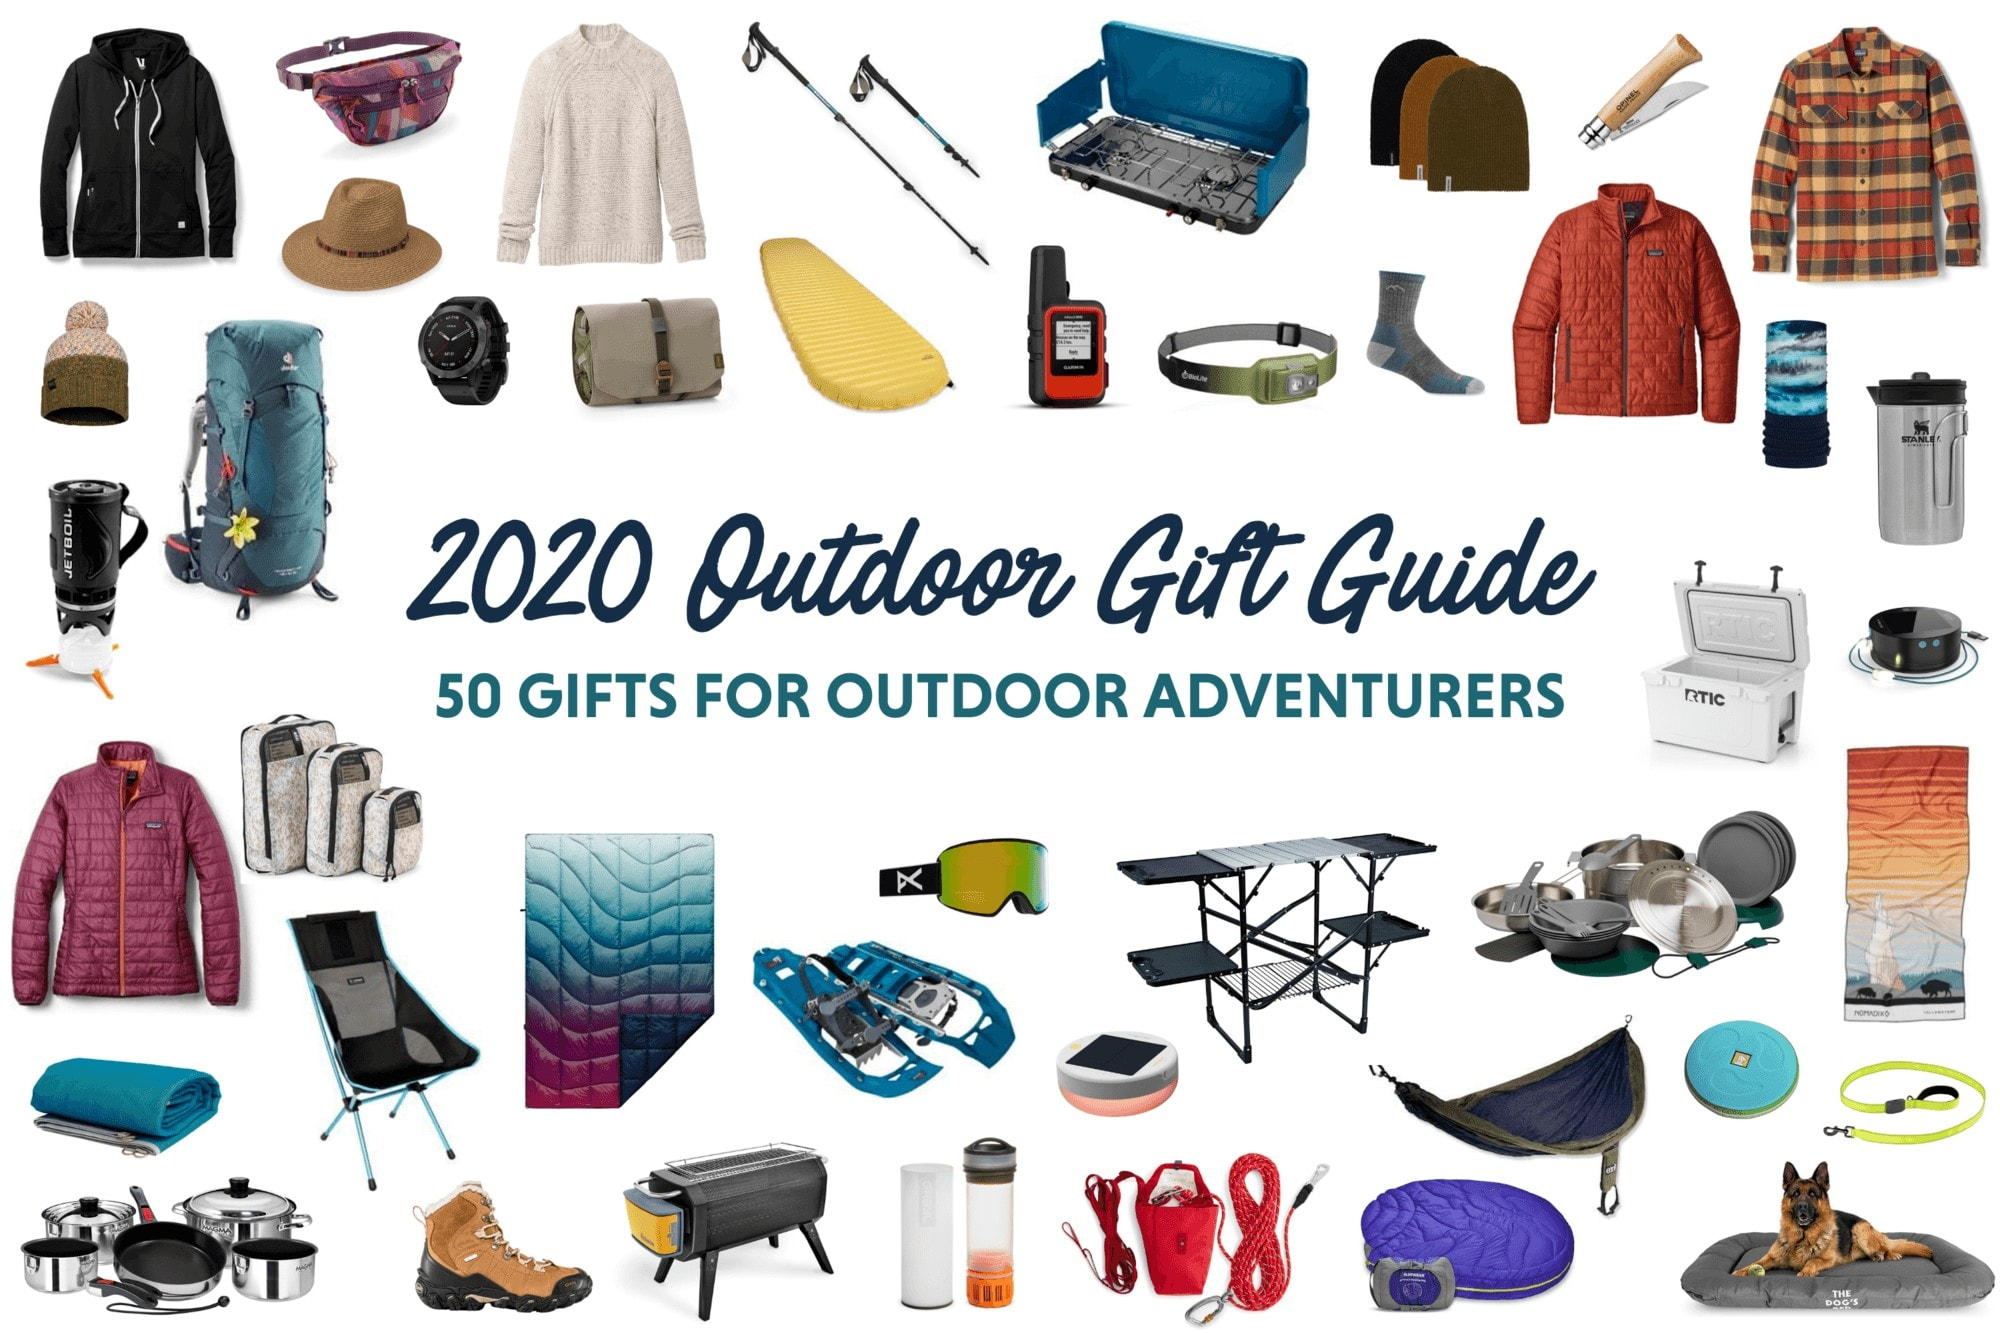 50 Best Gifts for Outdoor Lovers 2020: Ideas for Hikers, Campers, Van Lifers & More